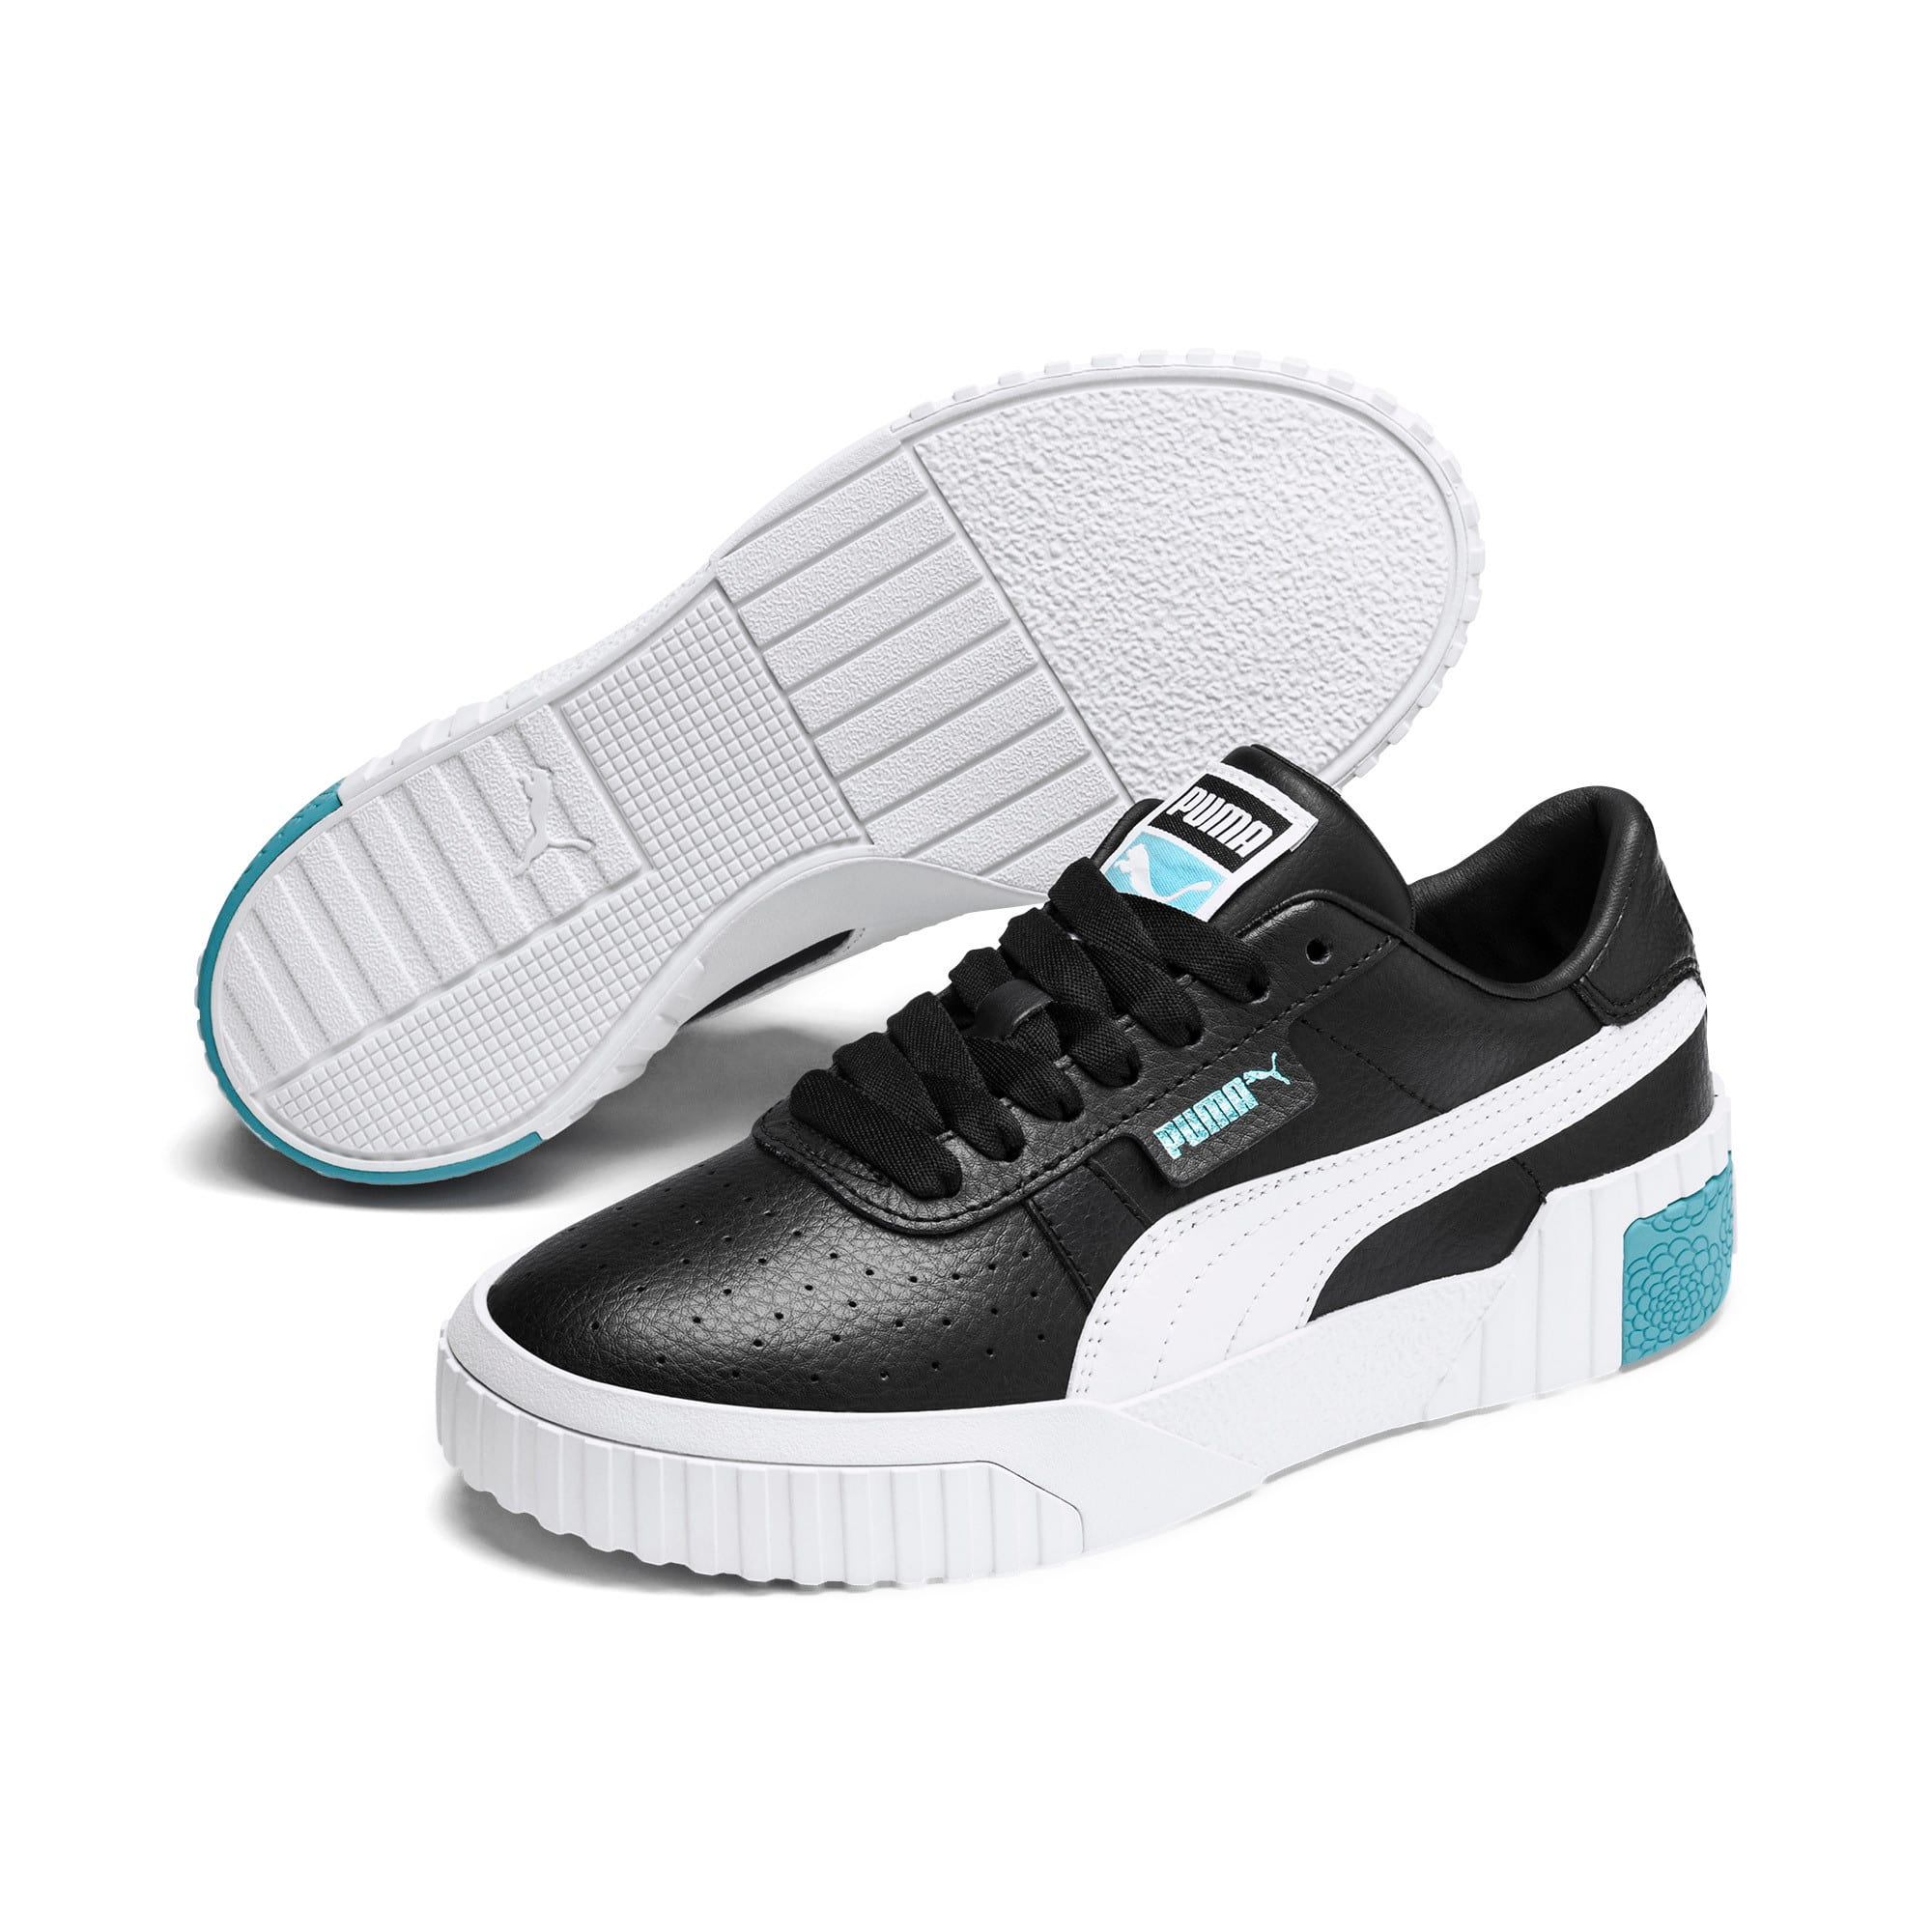 Thumbnail 2 of Cali Youth Trainers, Puma Black-Milky Blue, medium